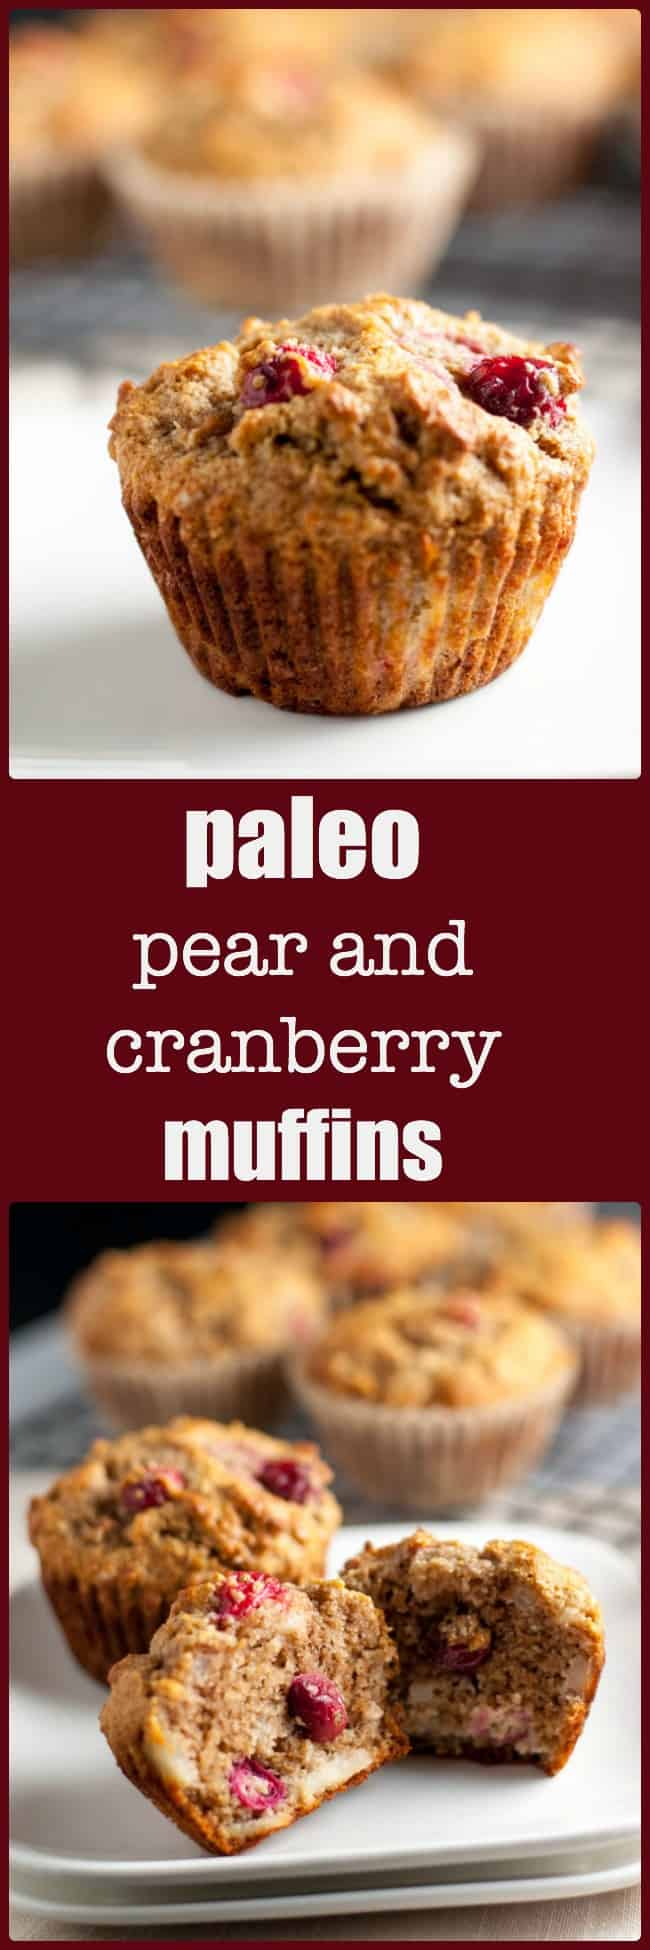 Paleo Pear and Cranberry Muffins. A tender, moist grain-free paleo muffin made with almond flour and naturally sweetened with ripe pears and honey. Use fresh or dried cranberries. #paleo #almond_flour #muffins #pear #cranberry #honey #gluten_free